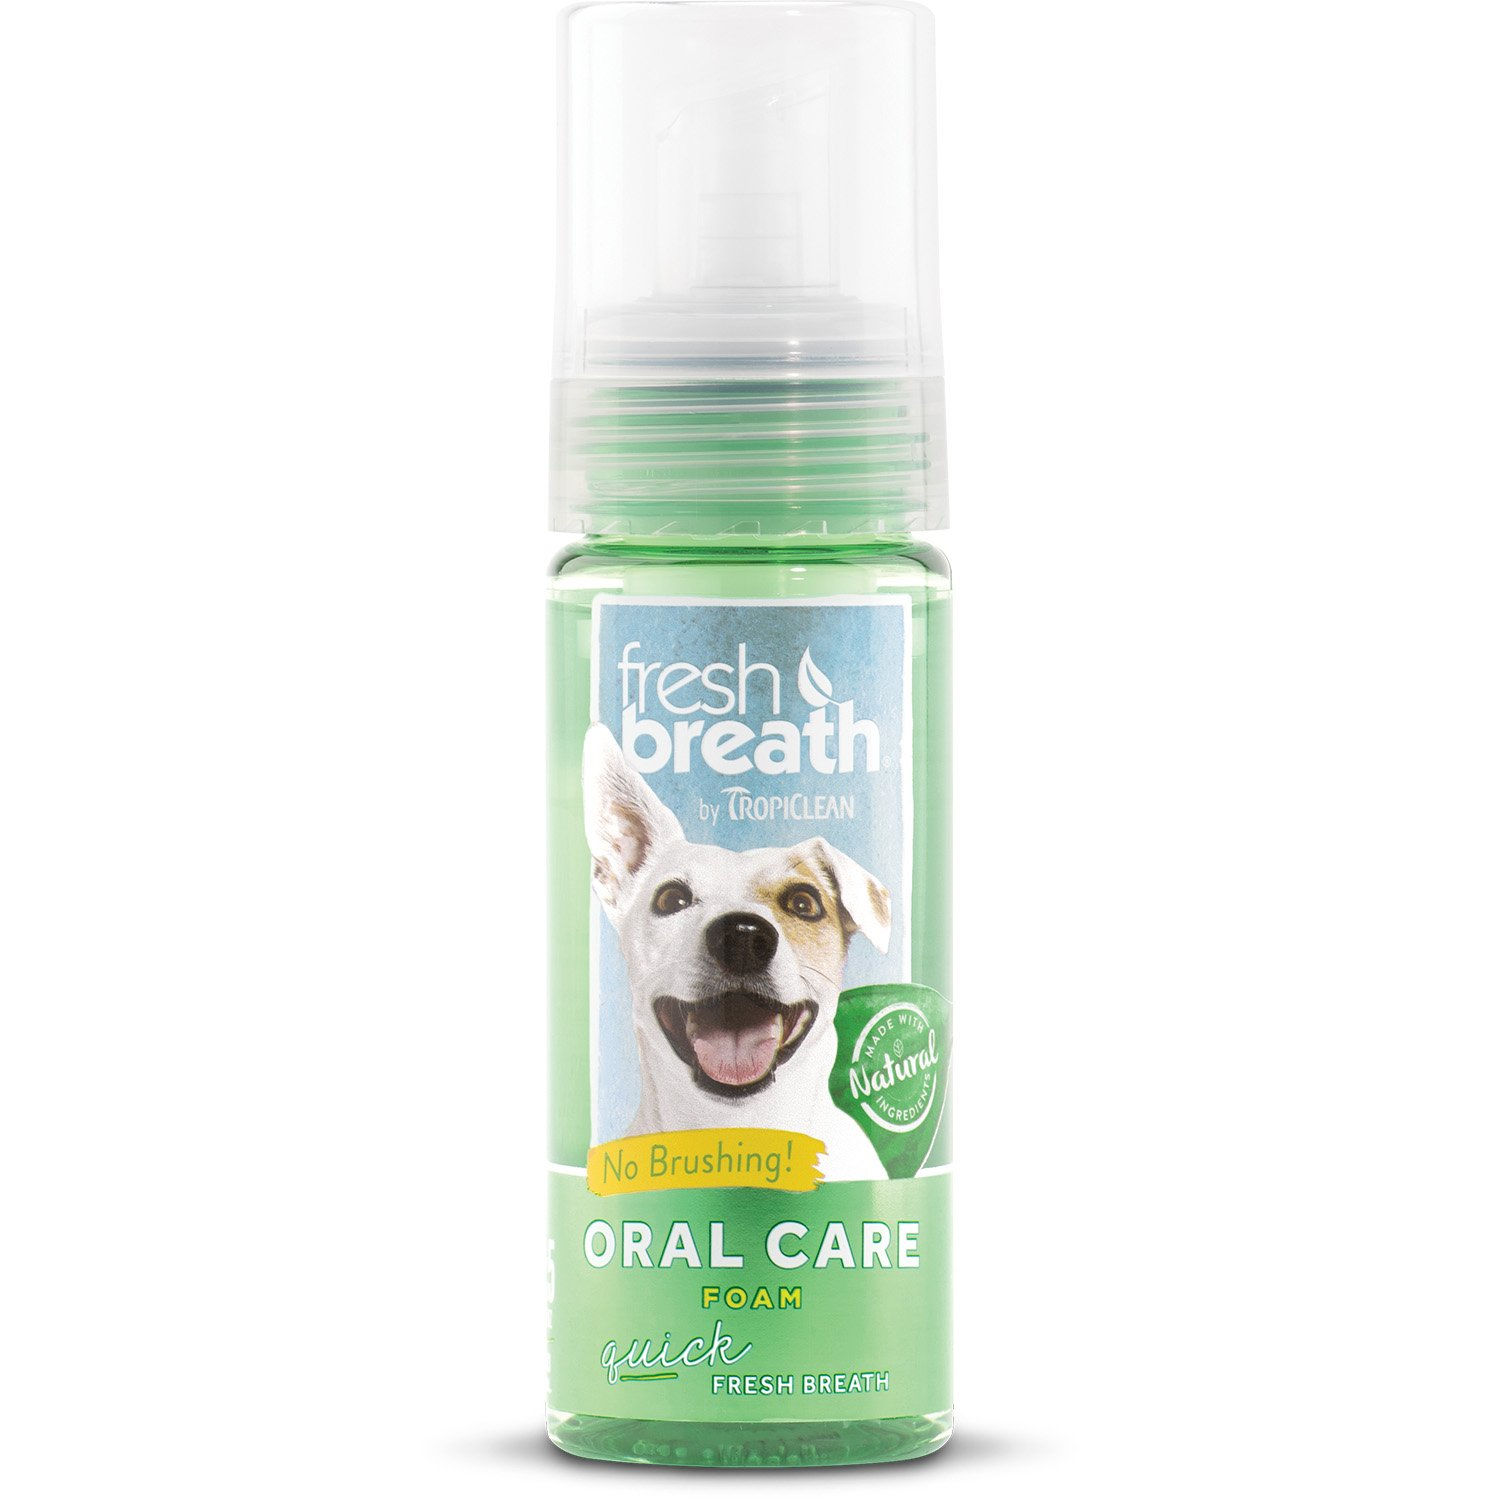 TropiClean Fresh Breath Fresh Mint Foam Dental Wash & Freshener for Pets